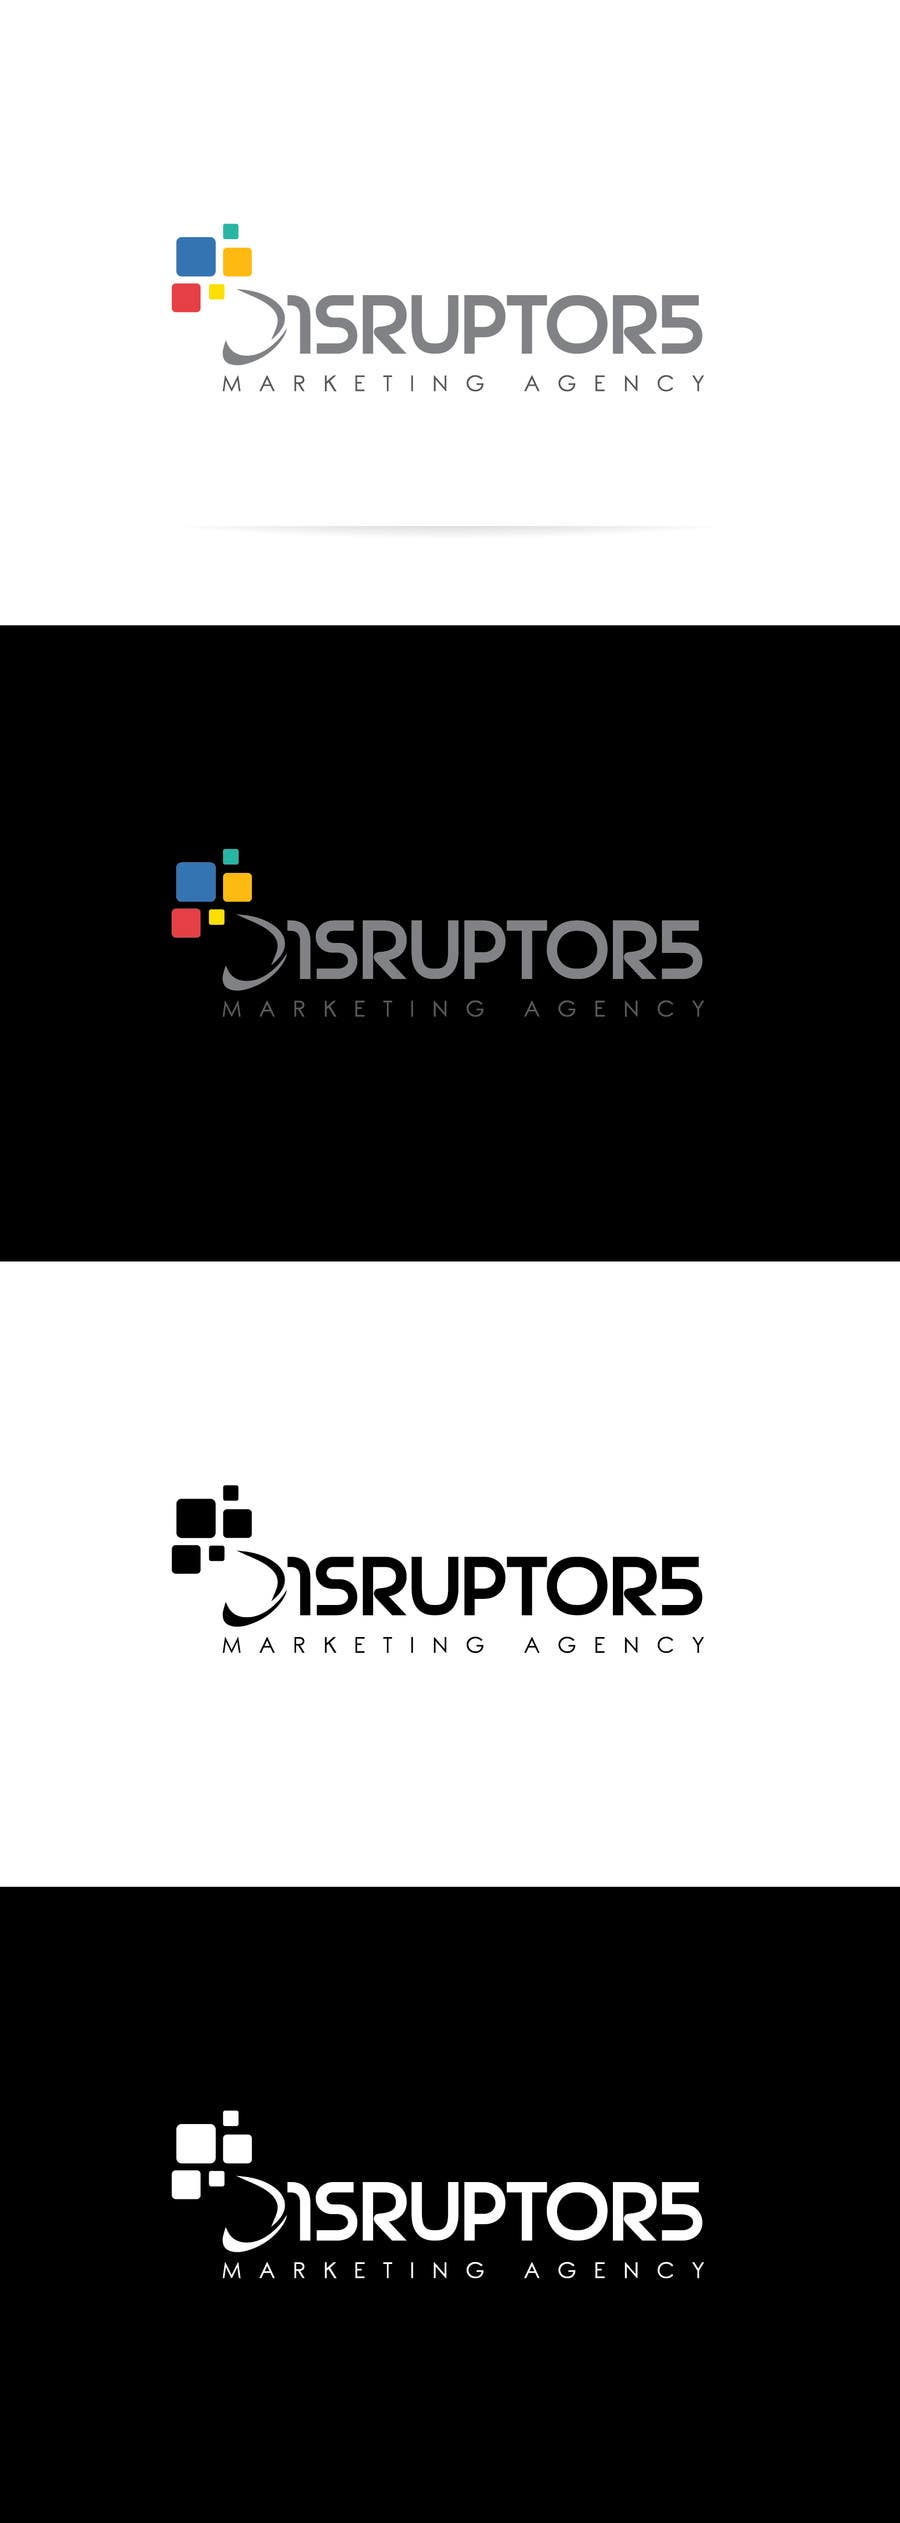 Contest Entry #58 for Logo for Marketing Agency - Disruptors